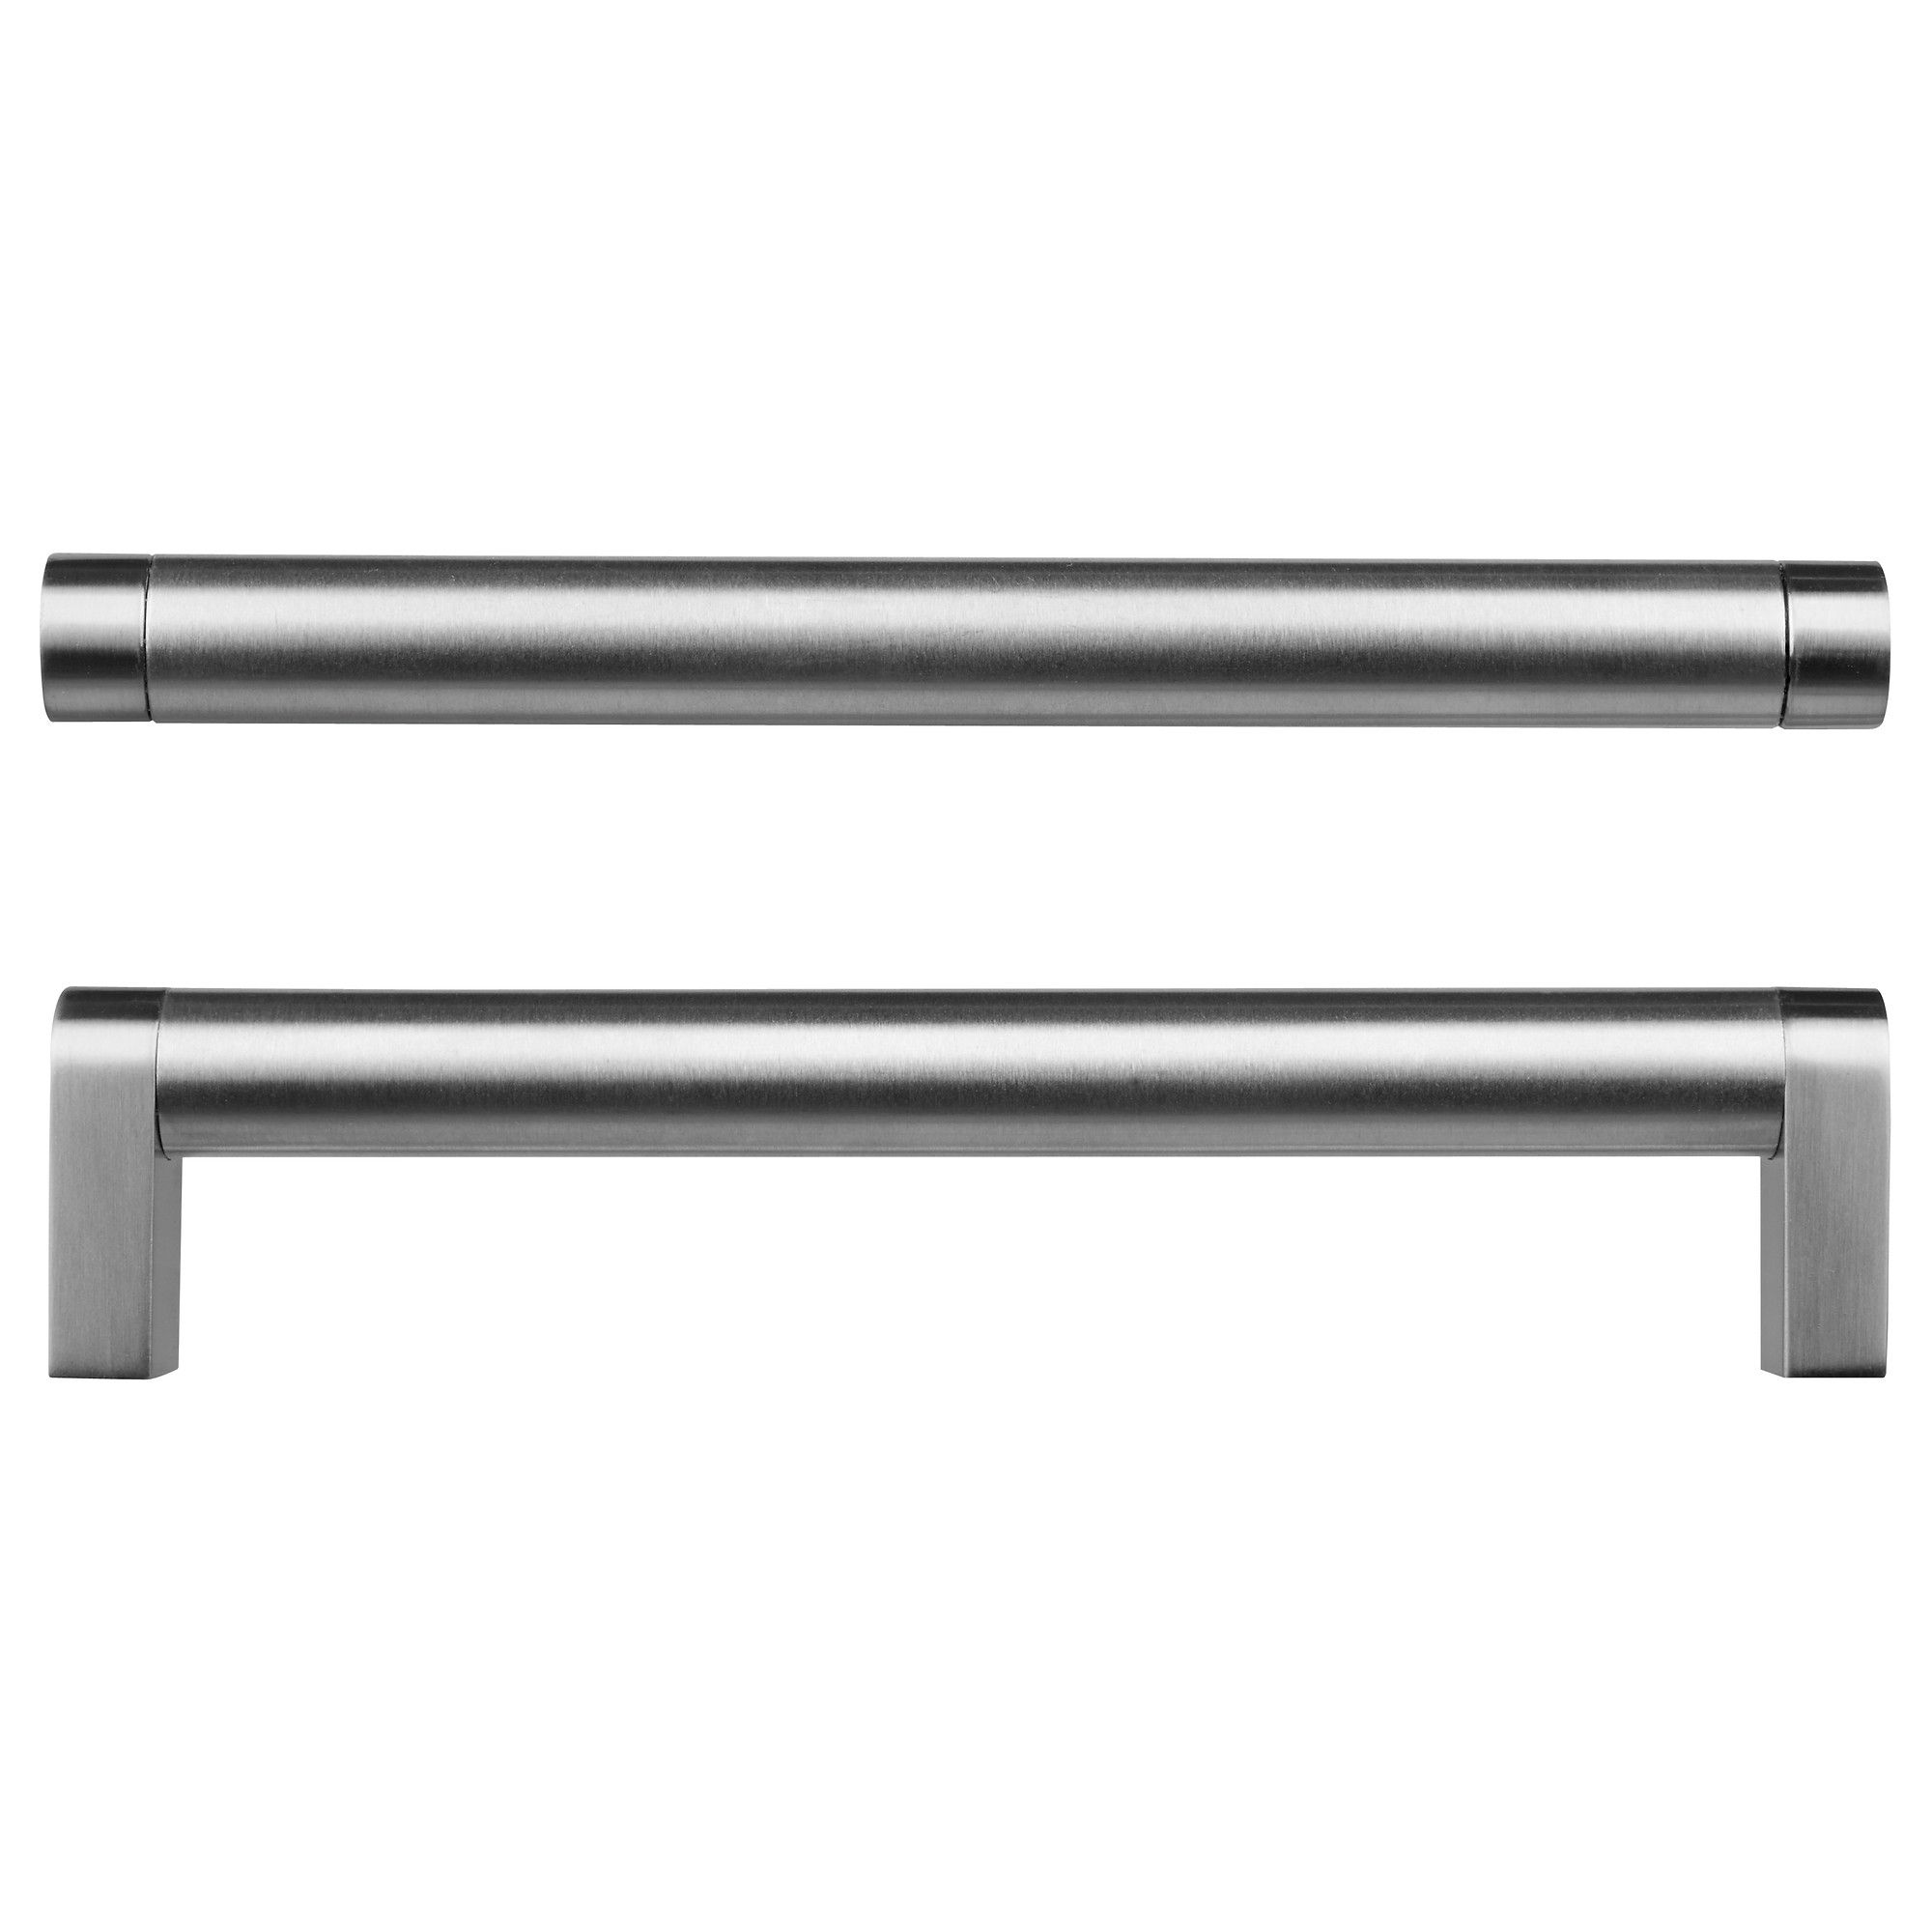 IKEA - ORRNÄS, Handle, stainless steel colour, 170 mm, , The clean lines of  these smooth stainless-steel handles give